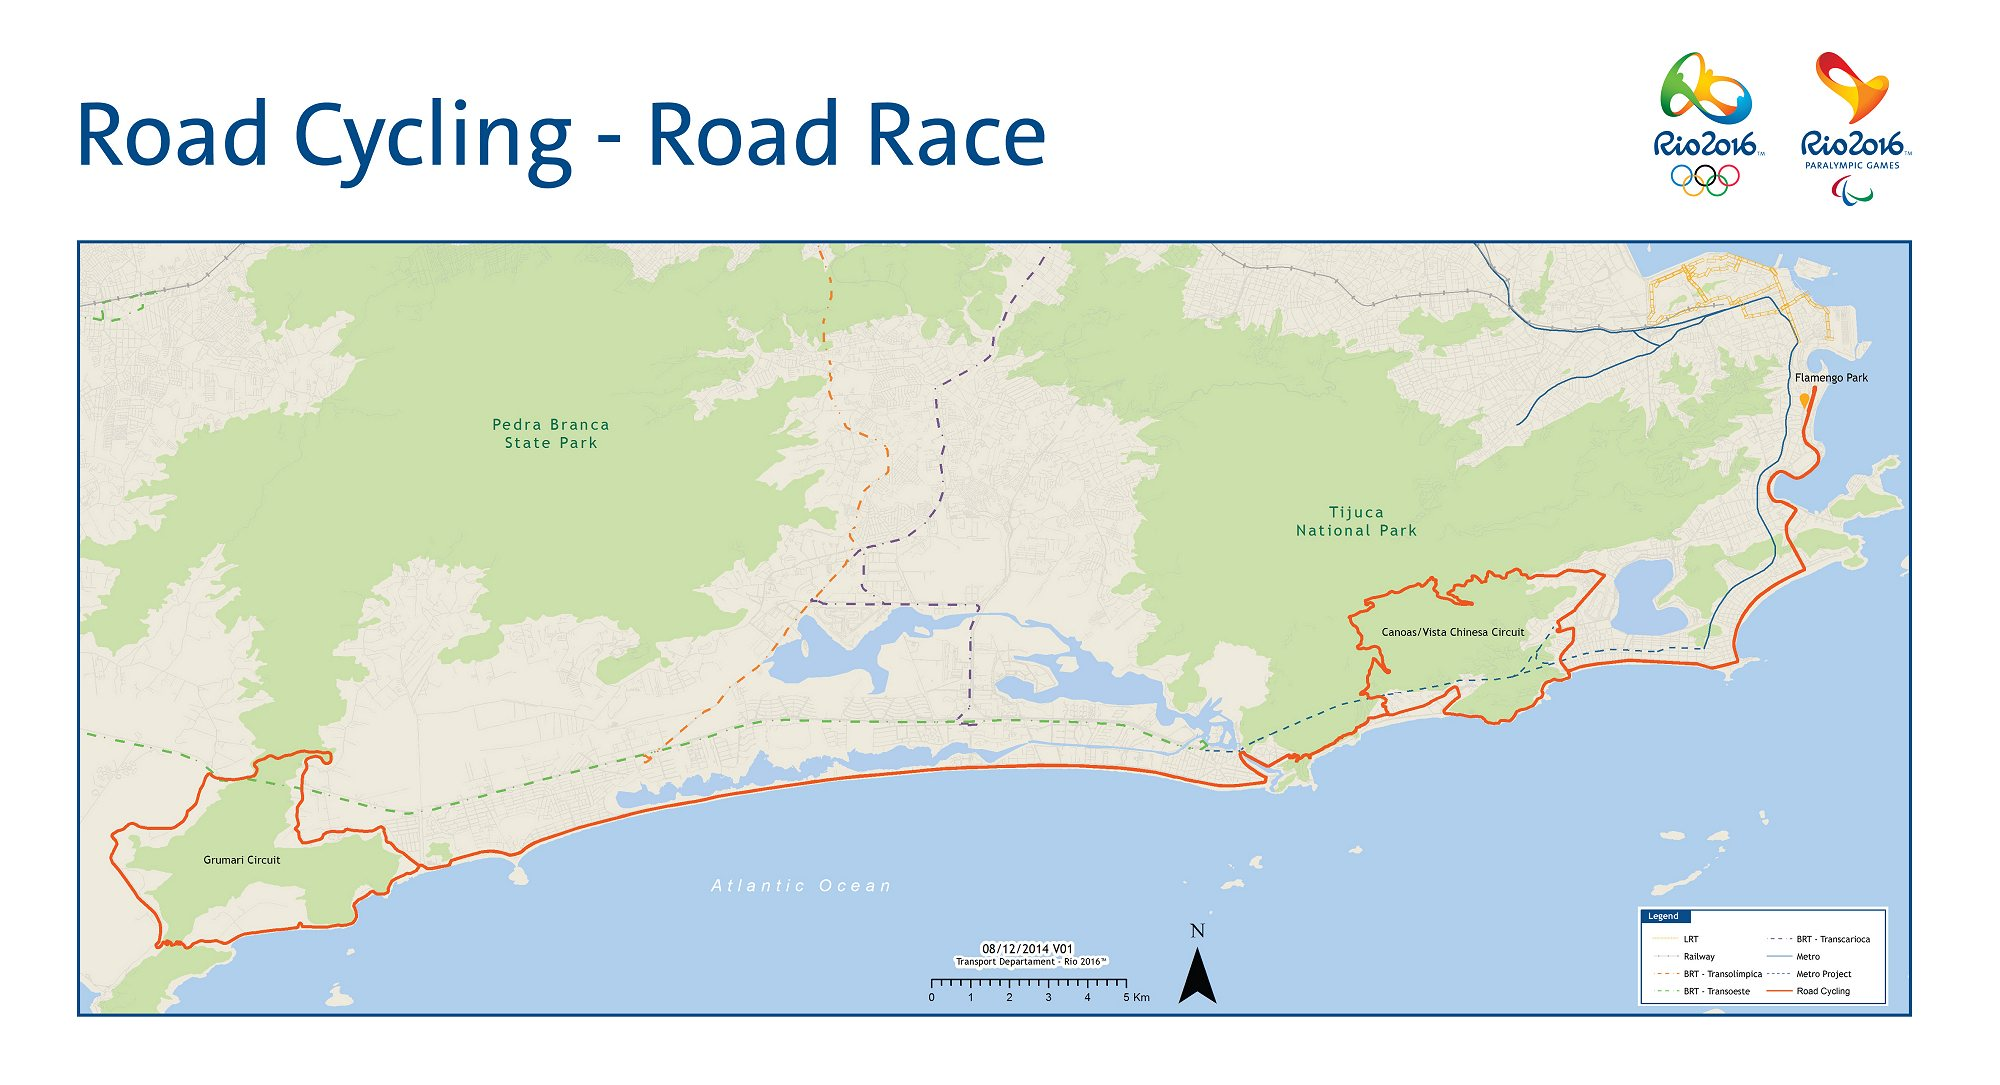 Road cycling road race small